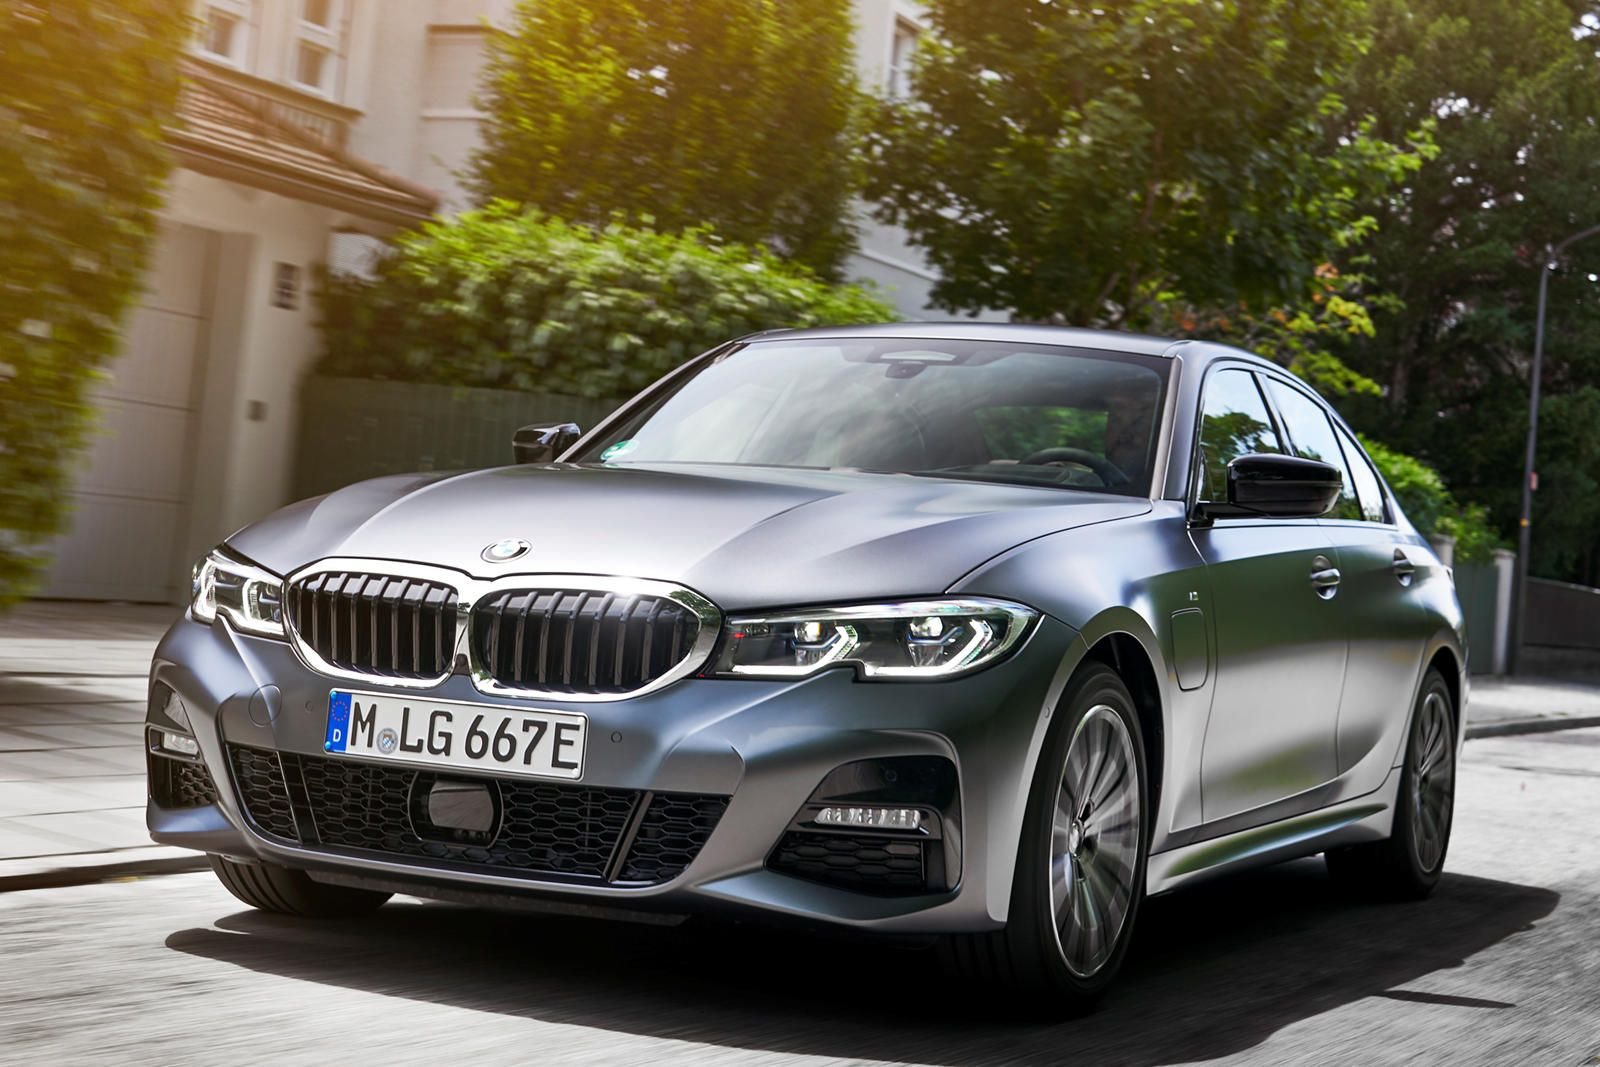 2021 BMW 3 Series Hybrid Arrives With 288 Horsepower in